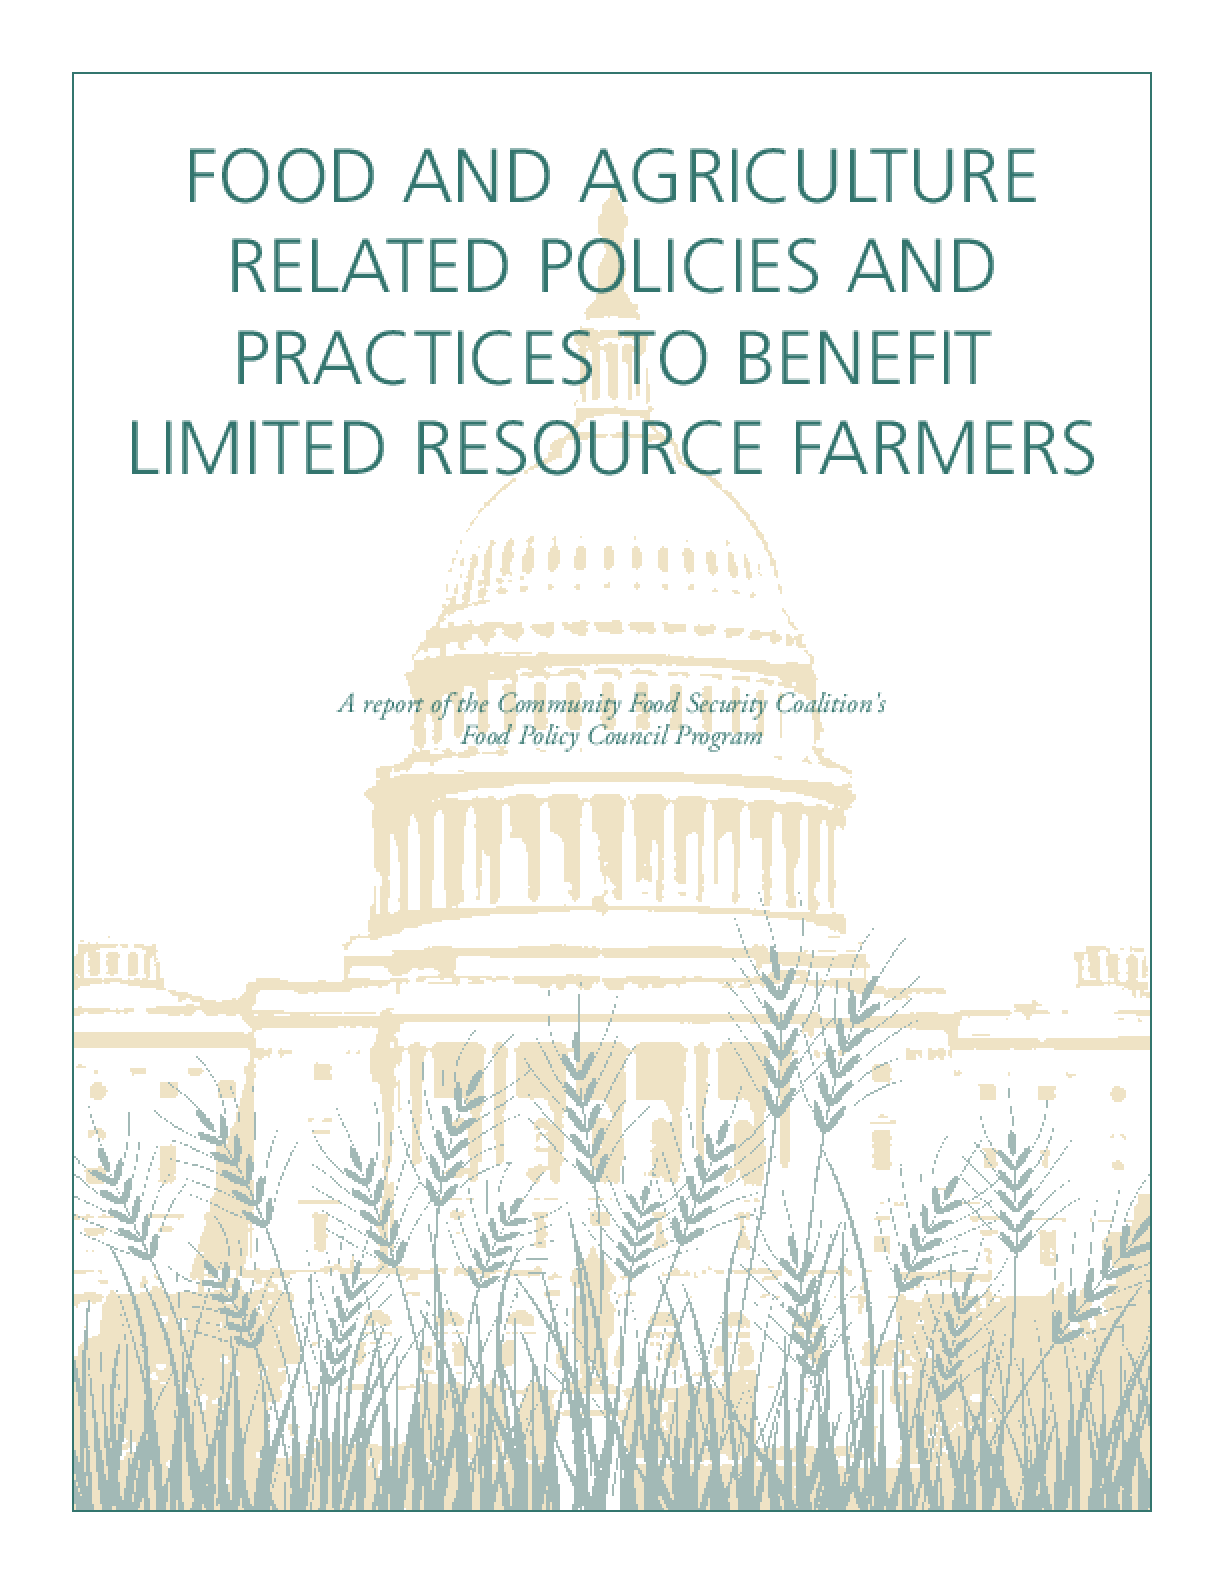 Food and Agriculture Related Policies and Practices to Benefit Limited Resource Farmers